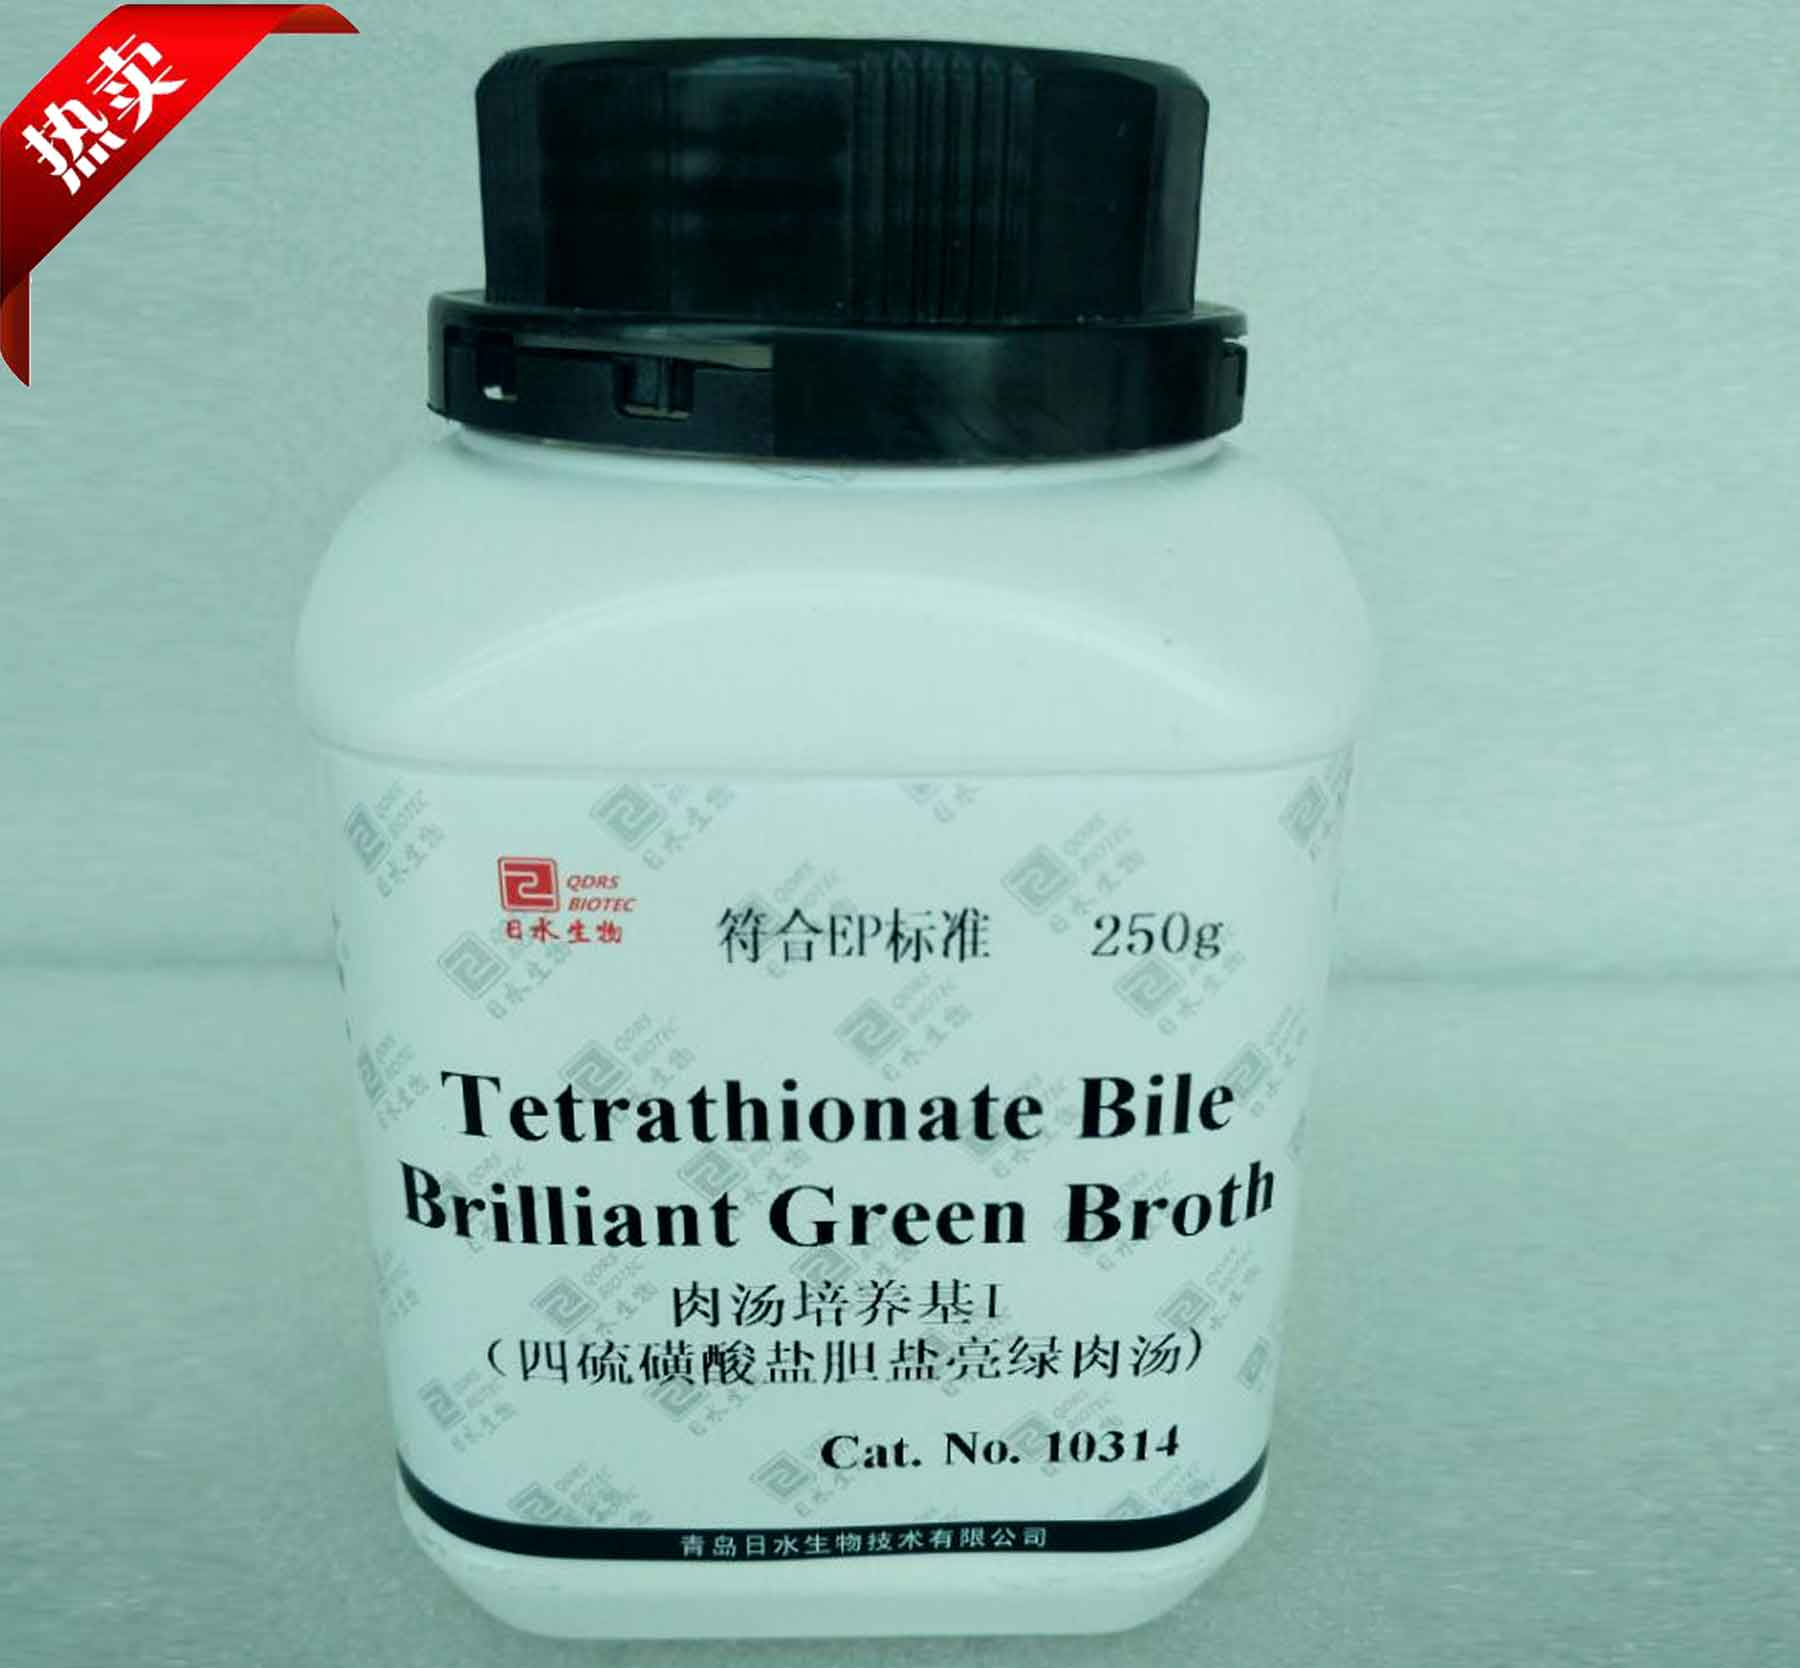 肉汤培养基 I四硫磺酸盐胆盐亮绿肉汤Tetrathionate Bile Brilliant Green Broth_TBG Broth